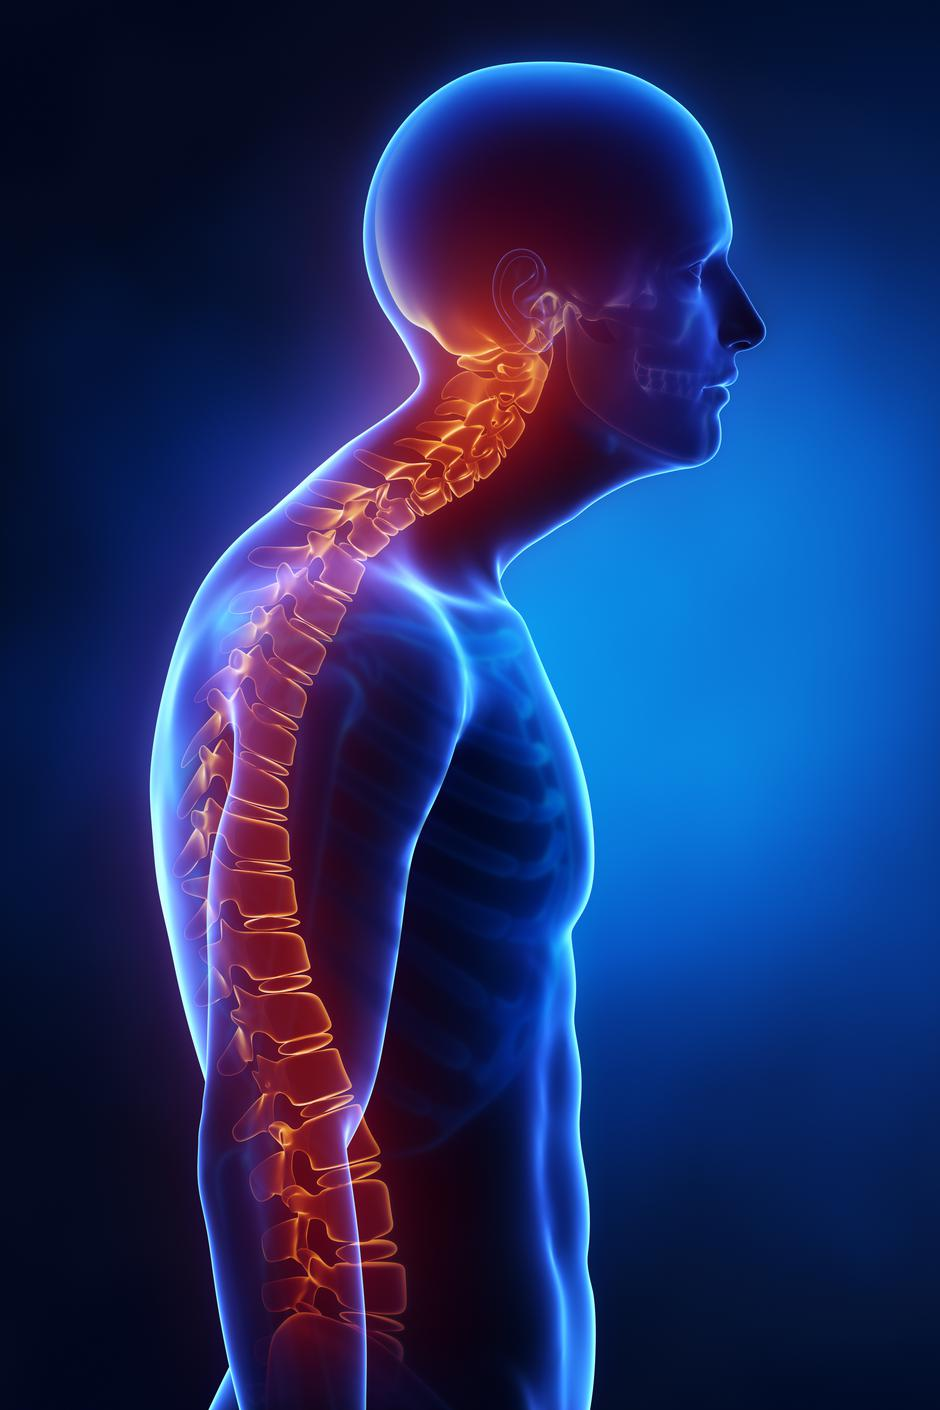 Kyphotic spine lateral view in x-ray | Autor: Thinkstock